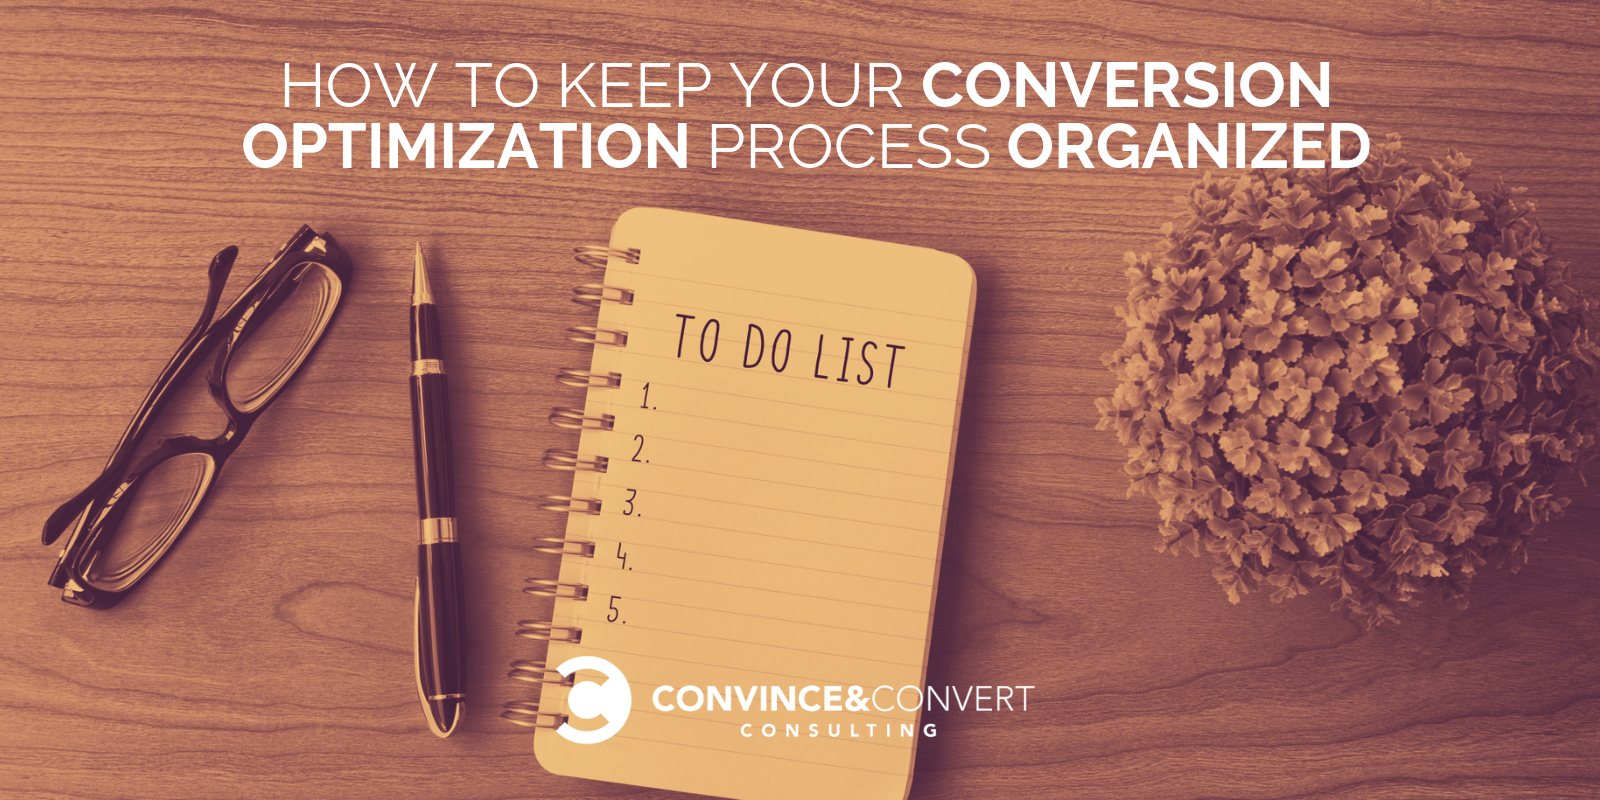 conversion optimization process organized